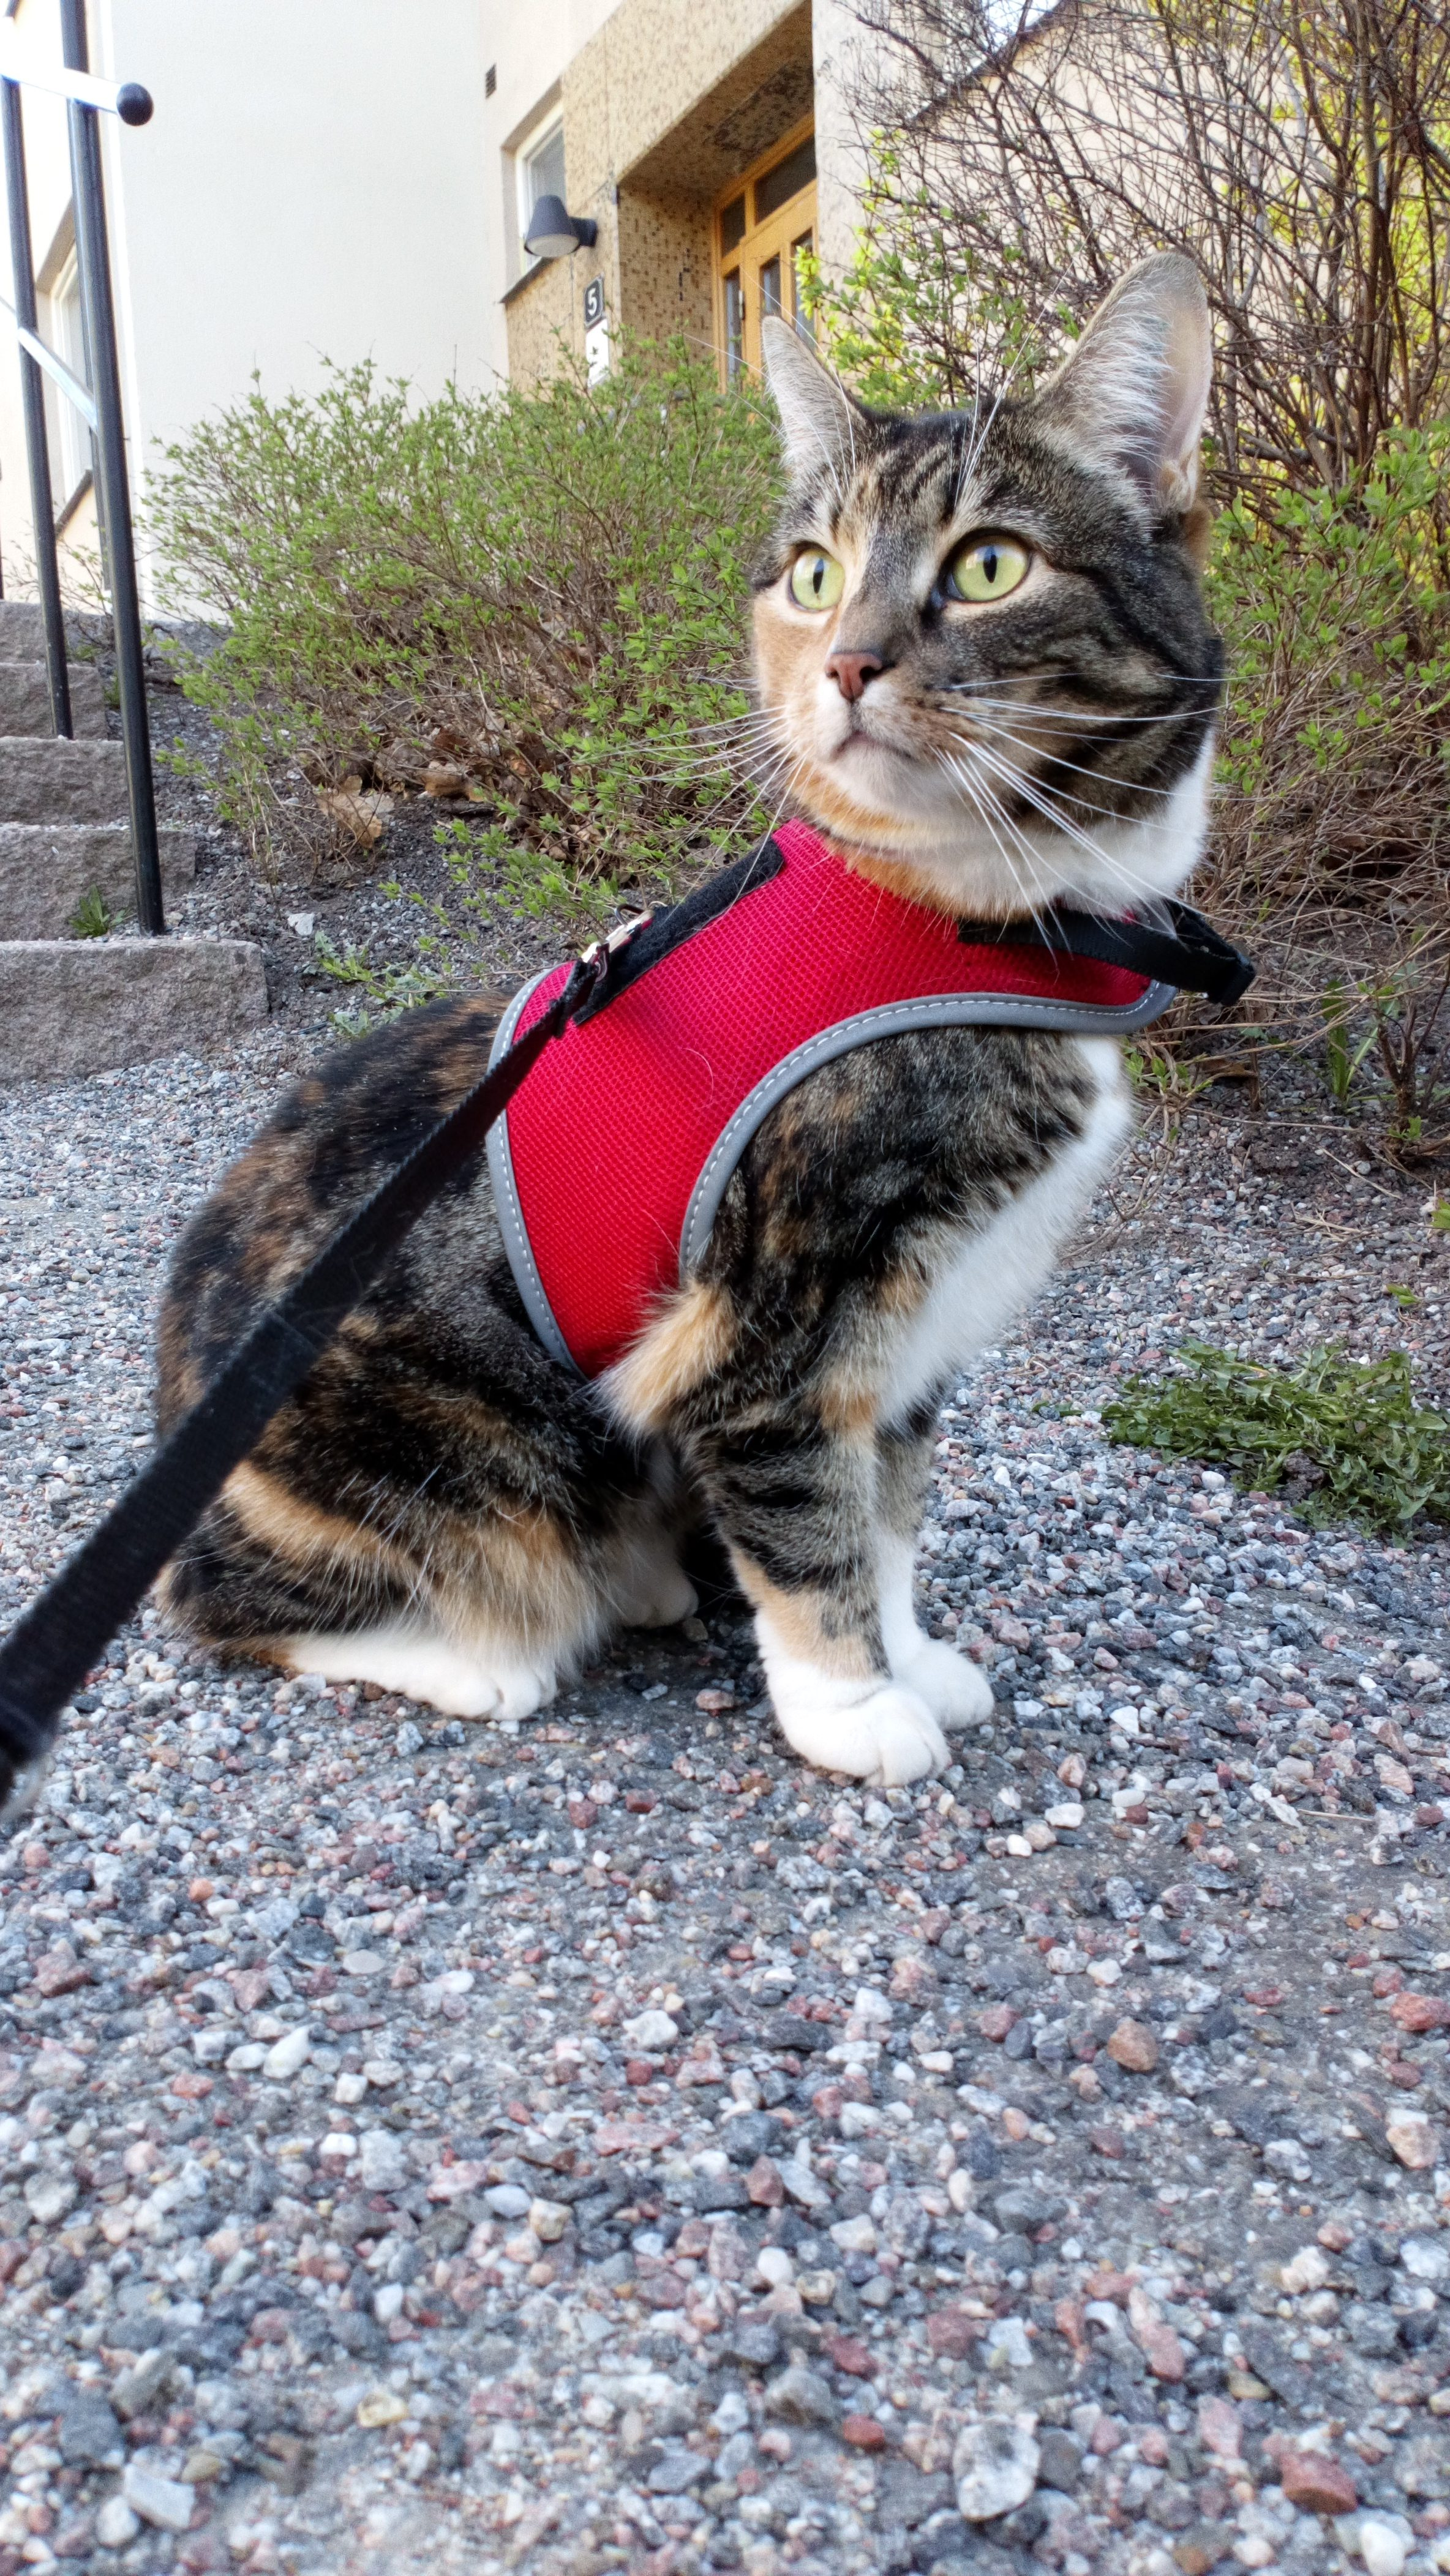 Mushanga showing off her red harness from Trixie